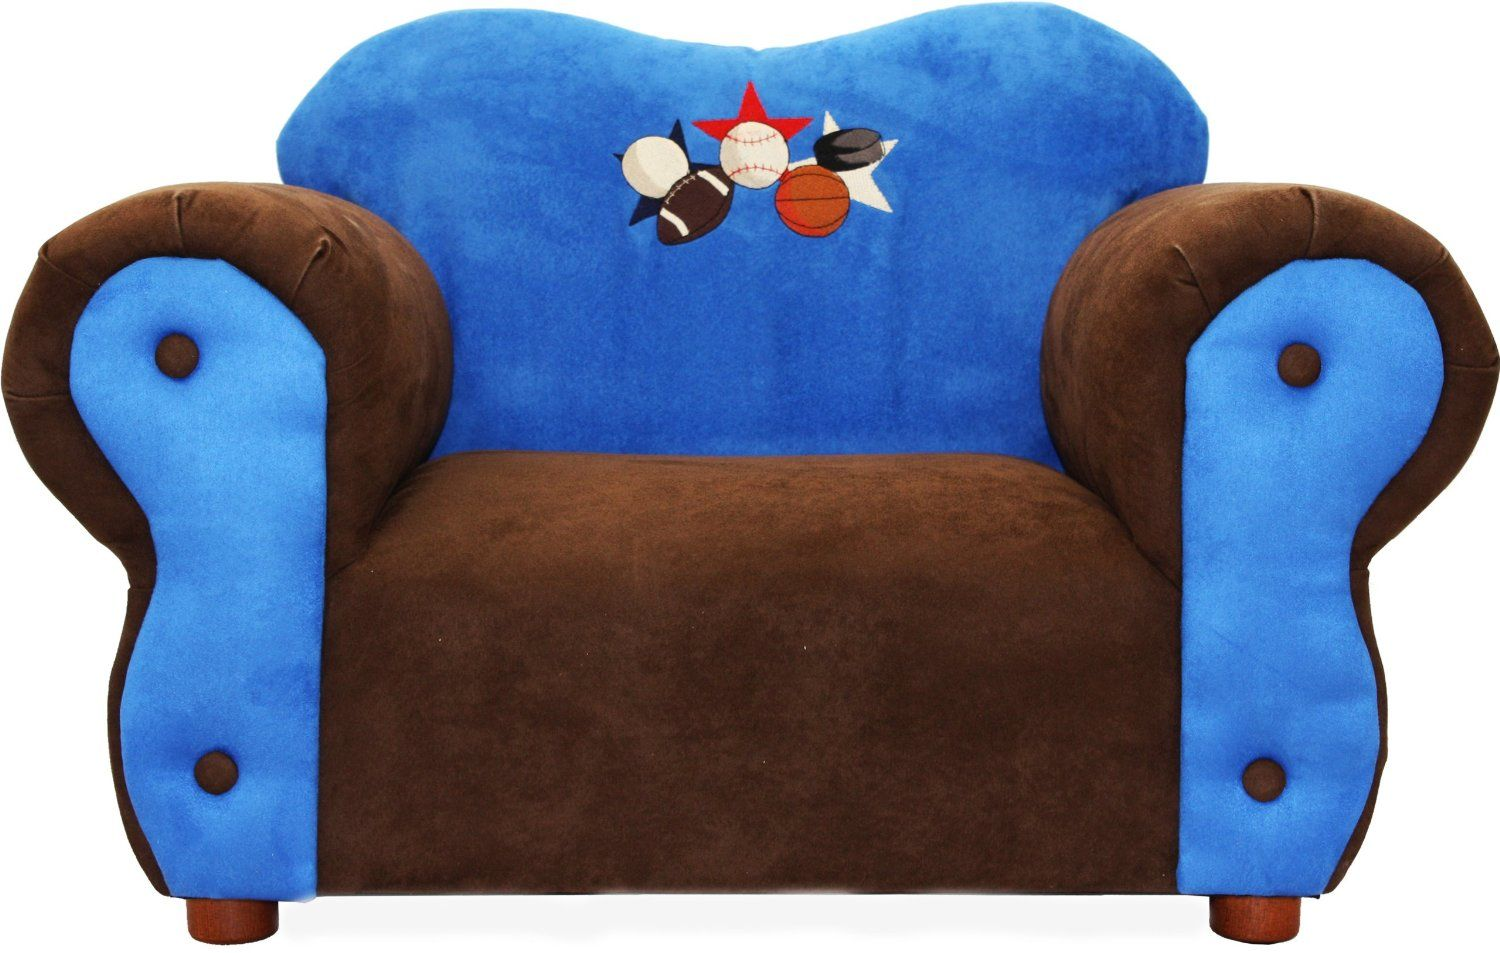 Fantasy furniture kids sports comfy chair groovy kids decor